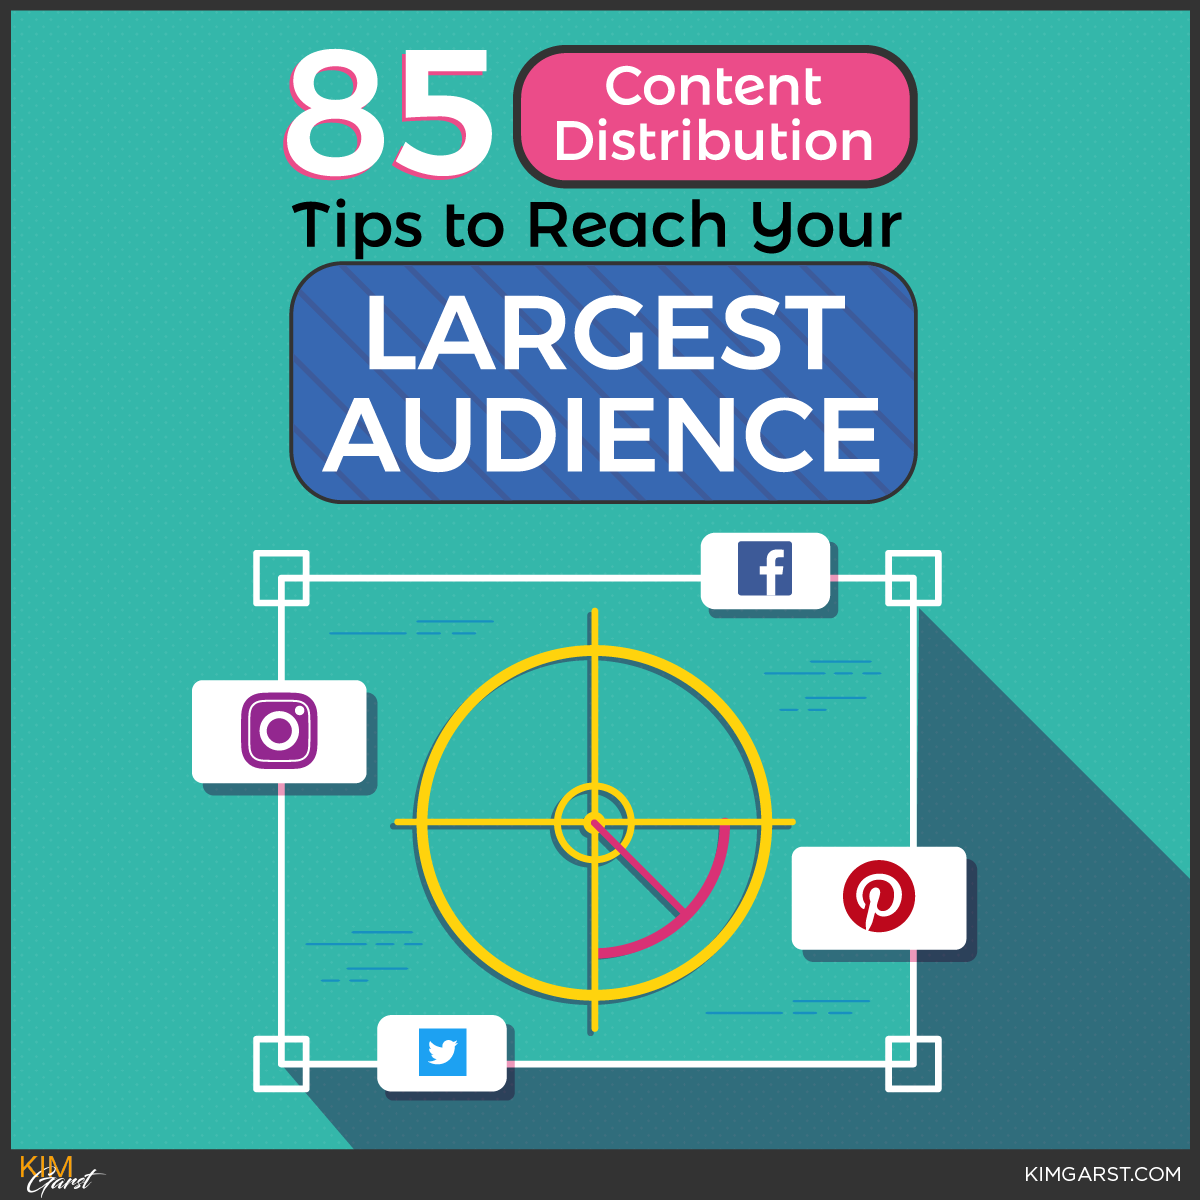 85 Content Distribution Tips | Content, Social media ...